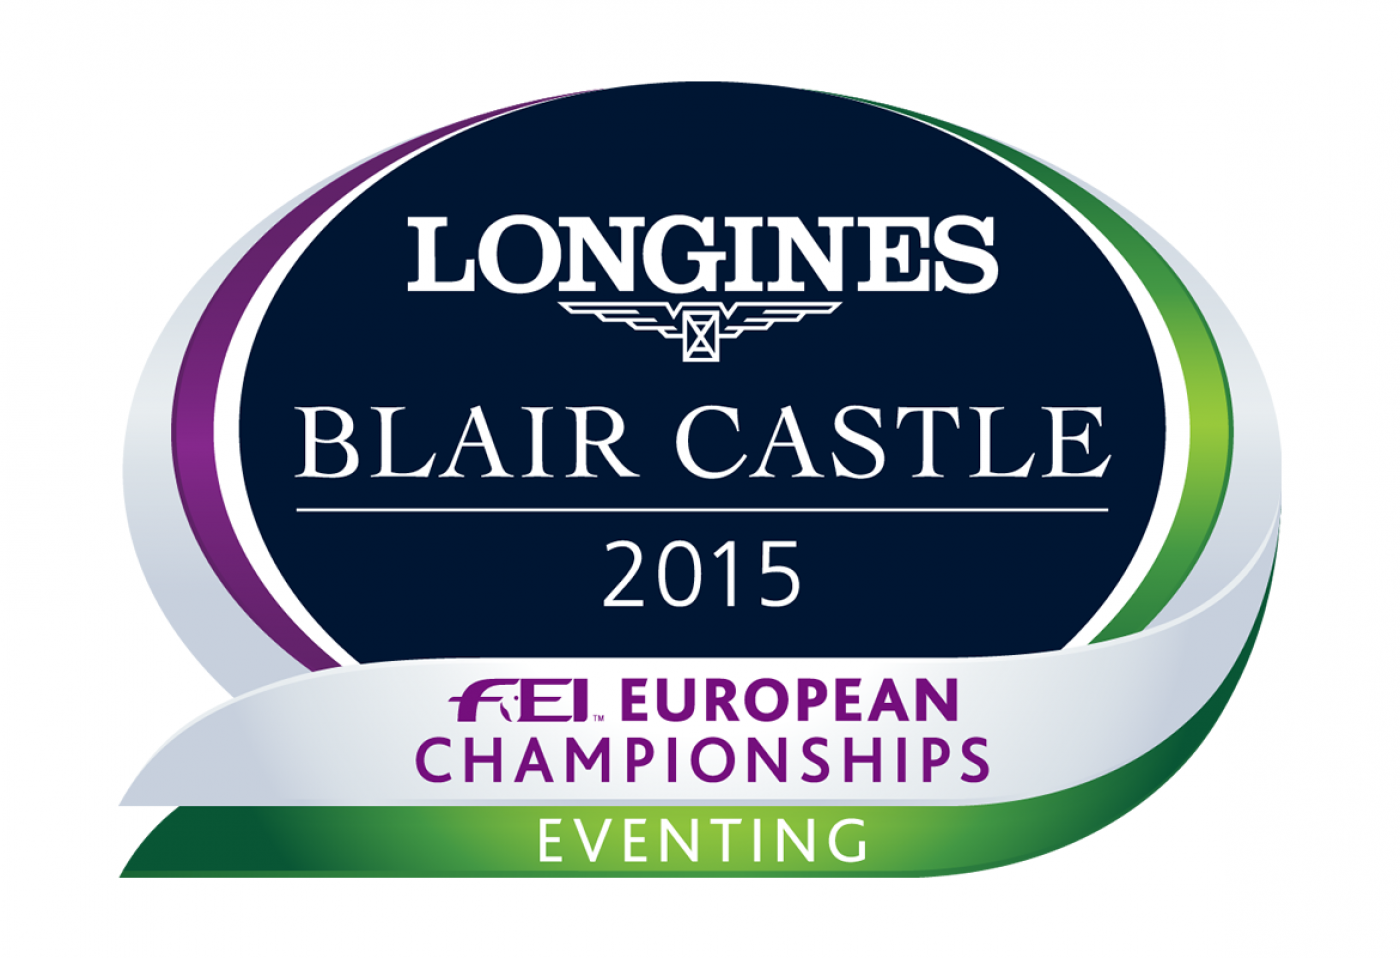 Longines Eventing Event: Longines announces its partnership with the Longines FEI European Eventing Championship 2015 at Blair Castle 2